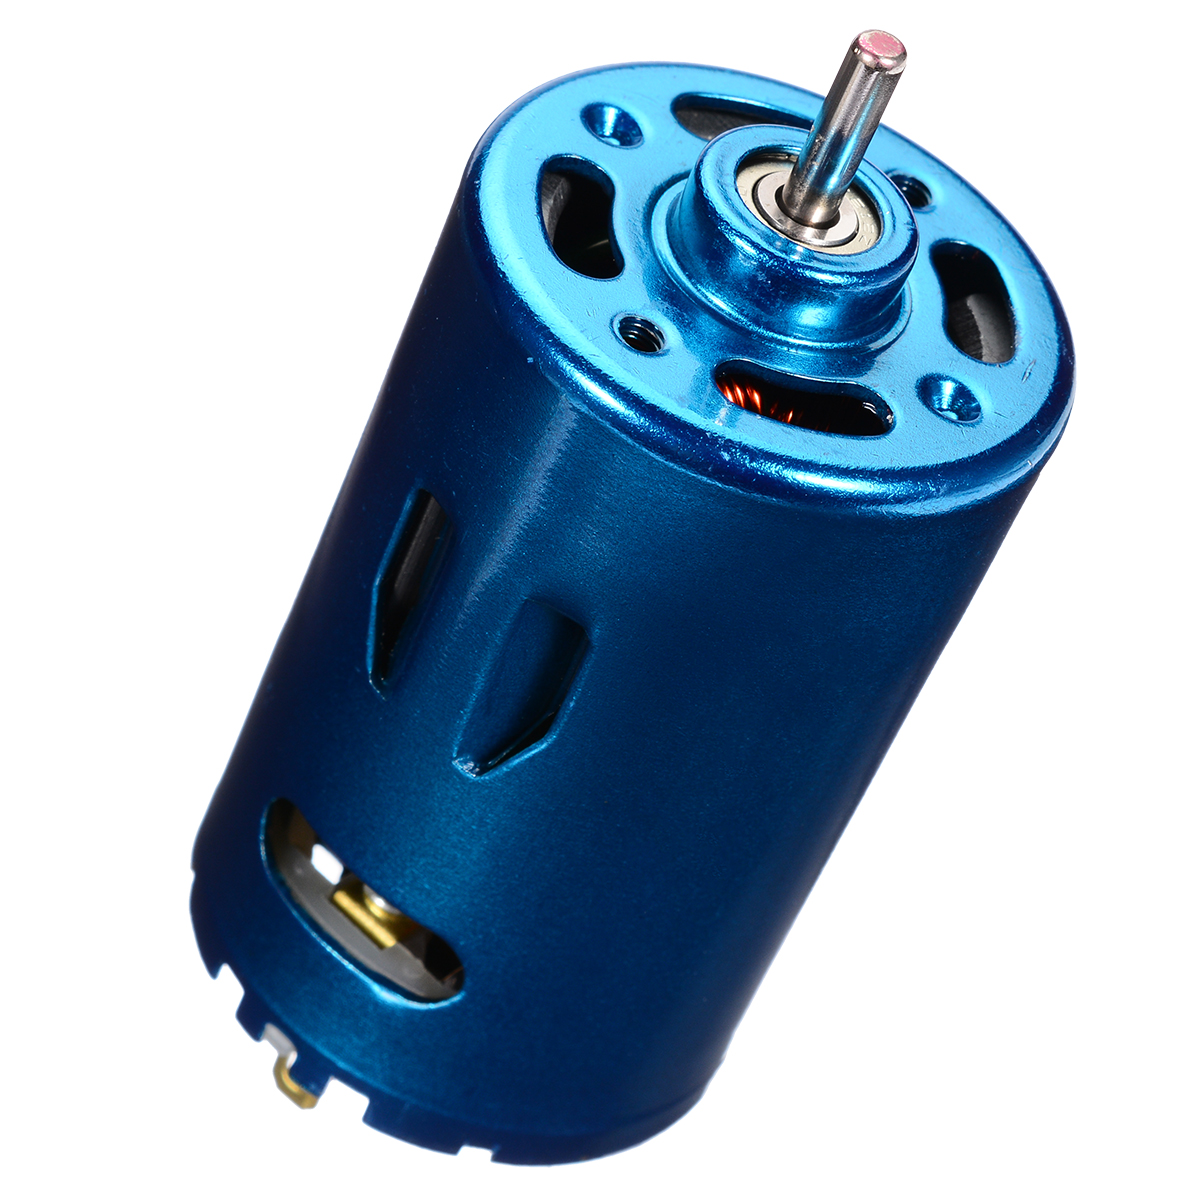 DC 12V 24V 30000RPM RS-550 Motor Electric Tool High Speed Large Torque DIY RC Car Boat Model